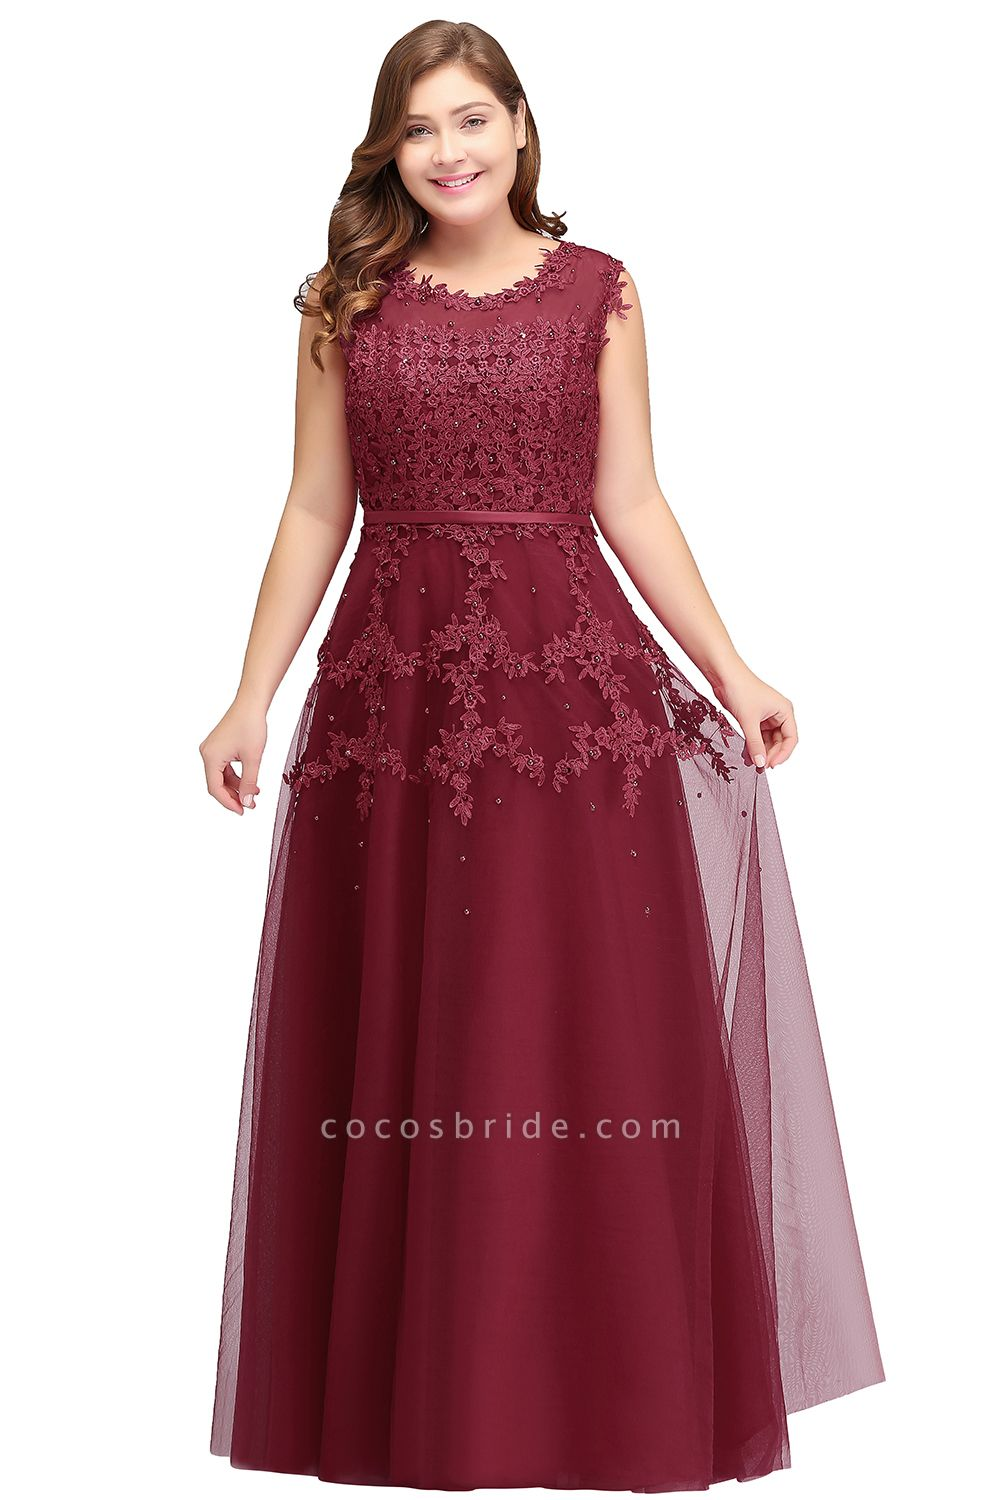 IRENE | A-Line Crew Floor Length Sleeveless Plus size Tulle Appliqued Evening Dresses with Crystals